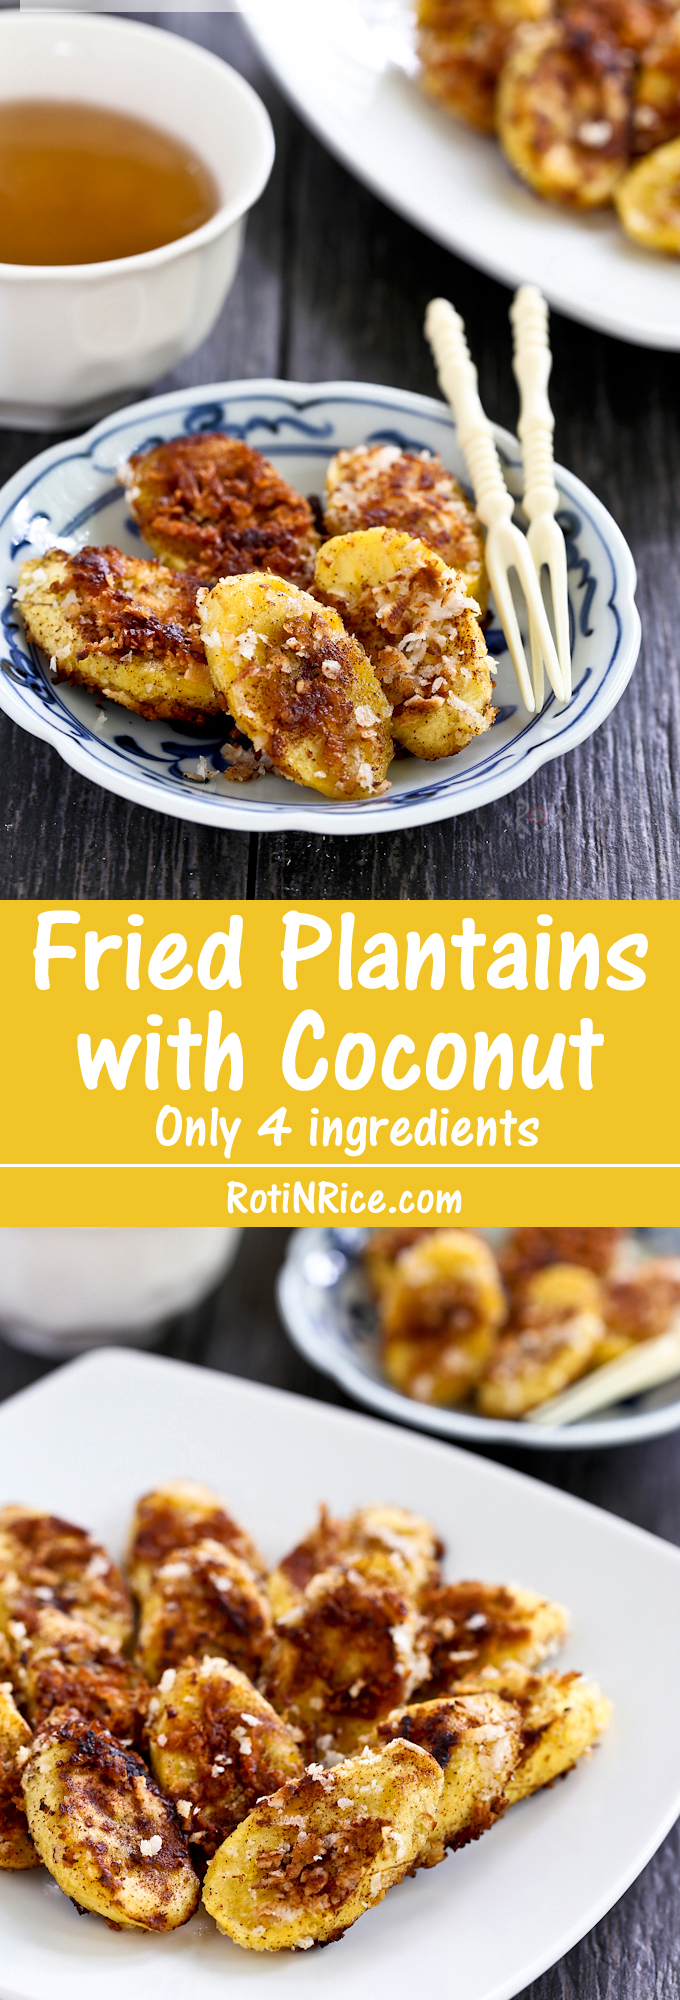 Quick and easy Fried Plantains with Coconut using only 4 ingredients. Takes under 20 minutes and is perfect for afternoon snack or tea time. | RotiNRice.com